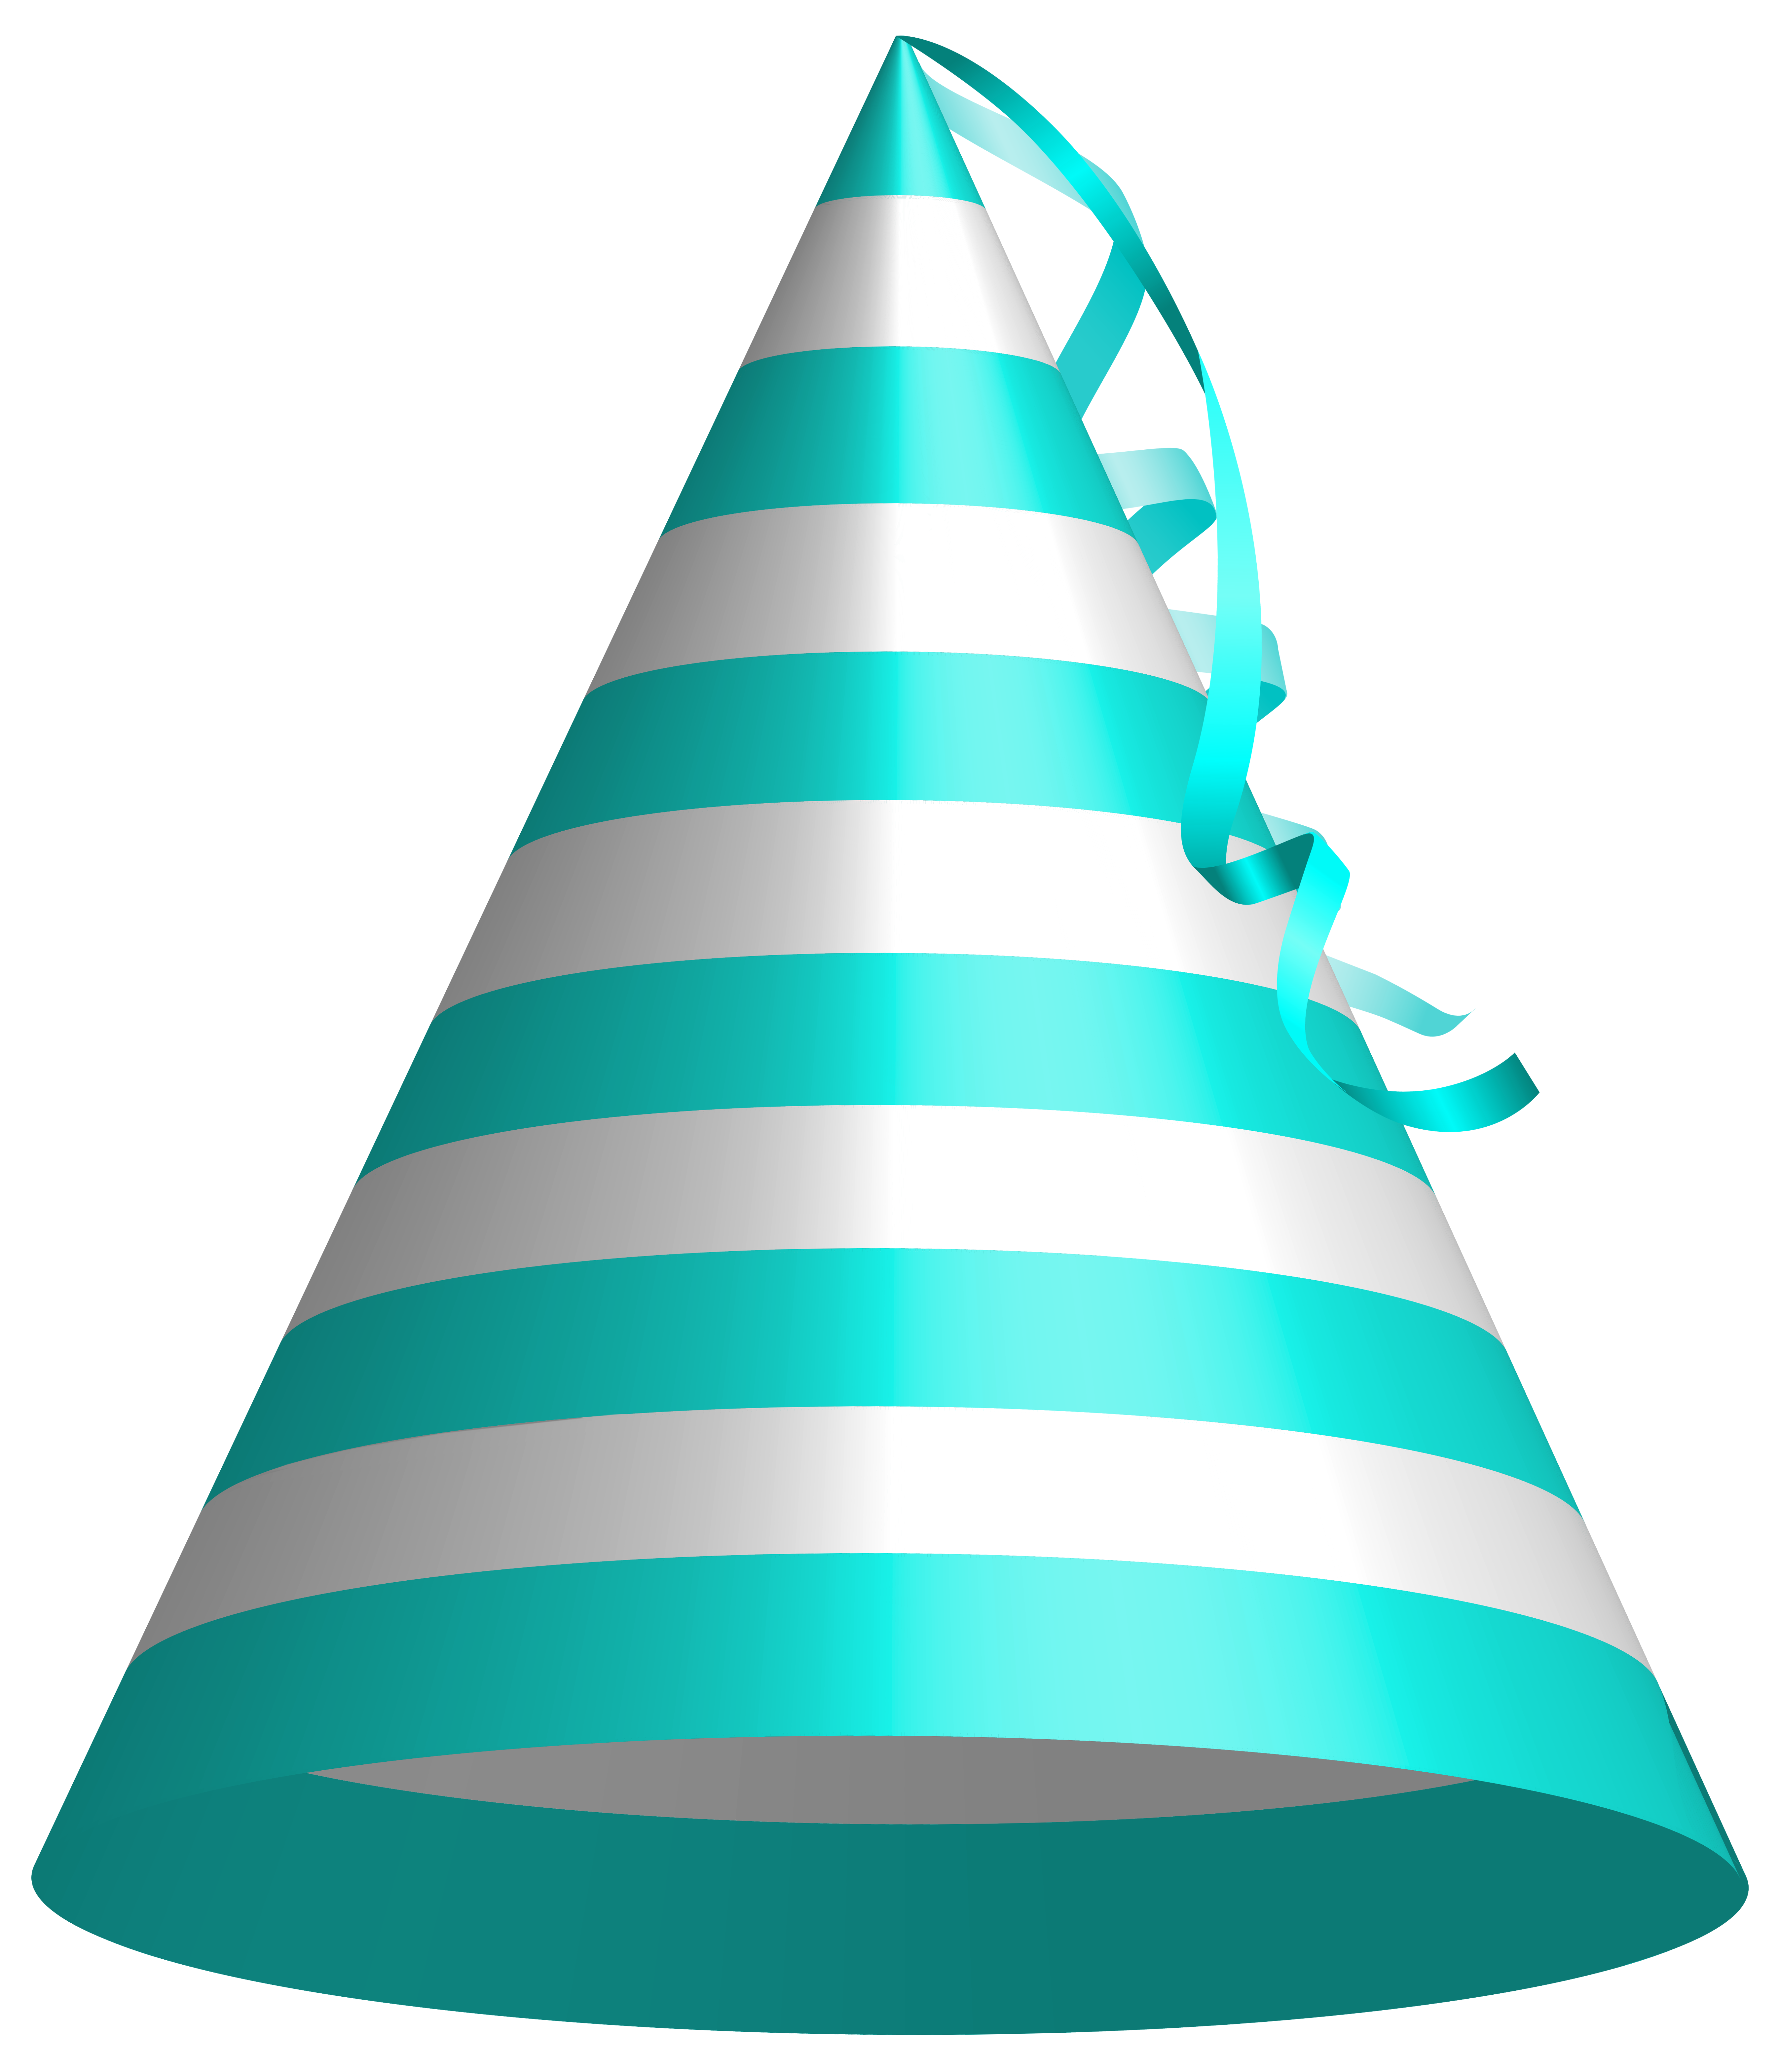 5385x6271 Party Hat Clipart Png Imageu200b Gallery Yopriceville